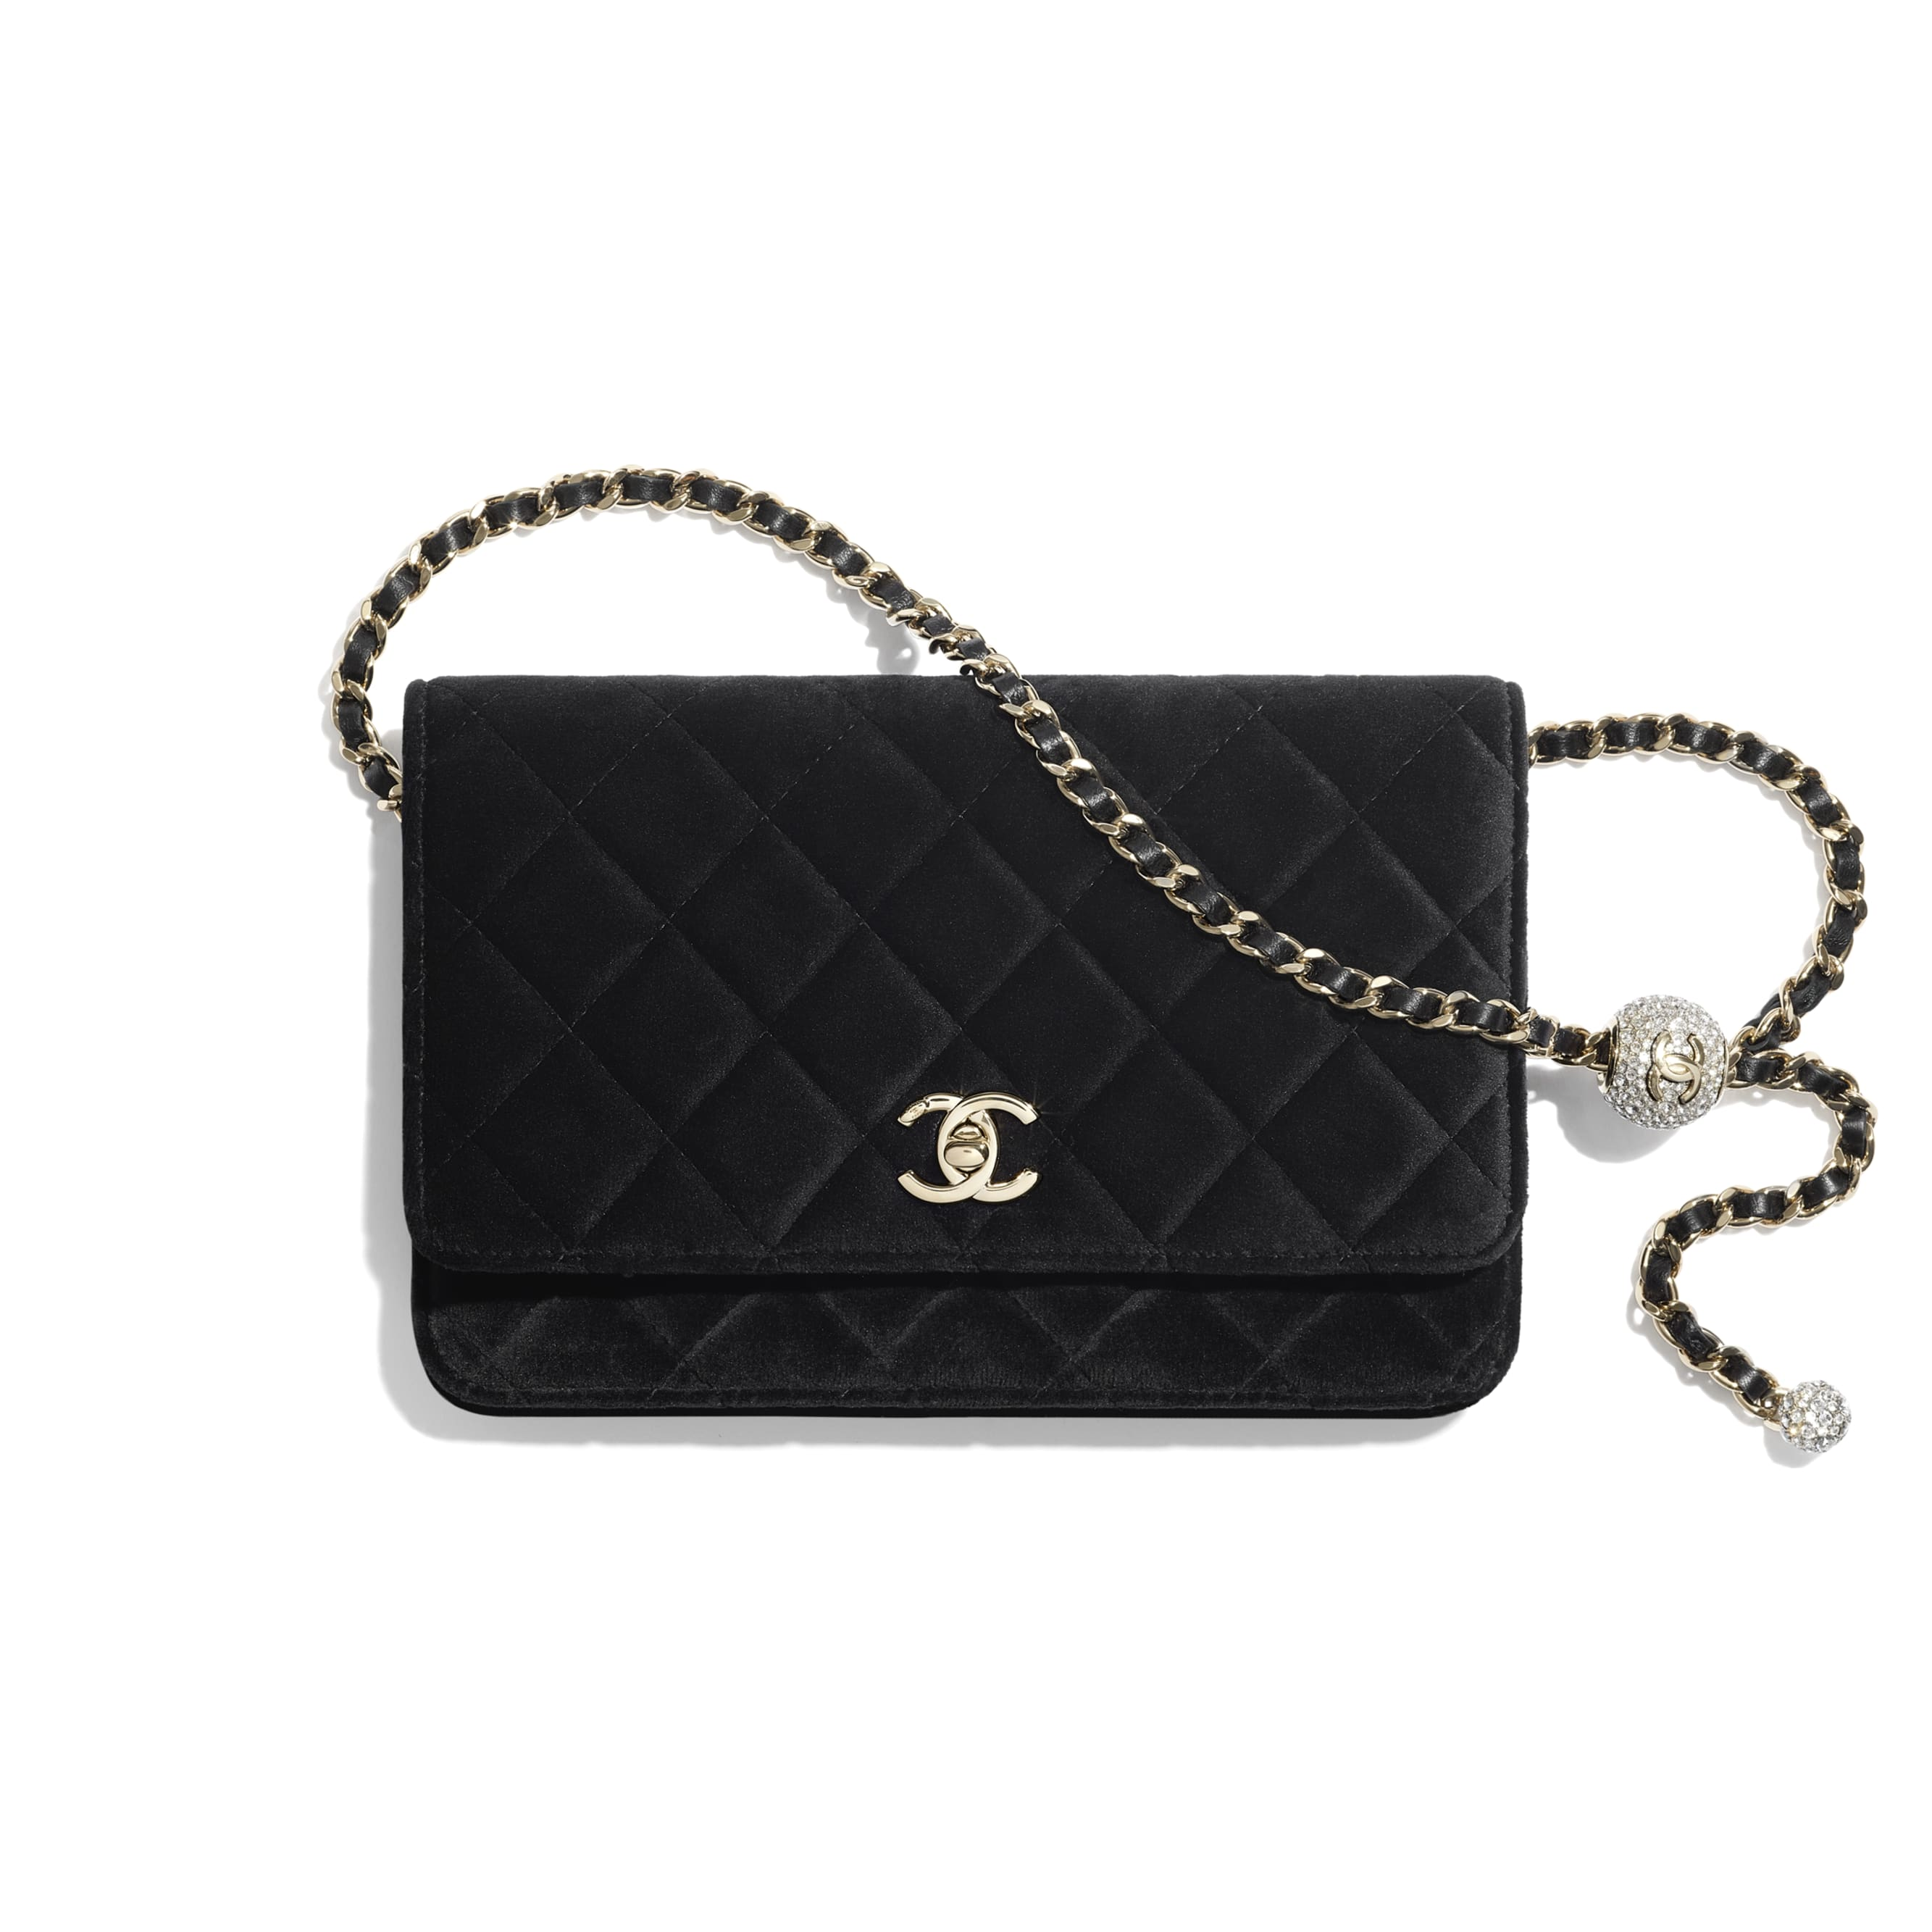 Wallet on Chain - Black - Velvet, Strass & Gold-Tone Metal - CHANEL - Default view - see standard sized version